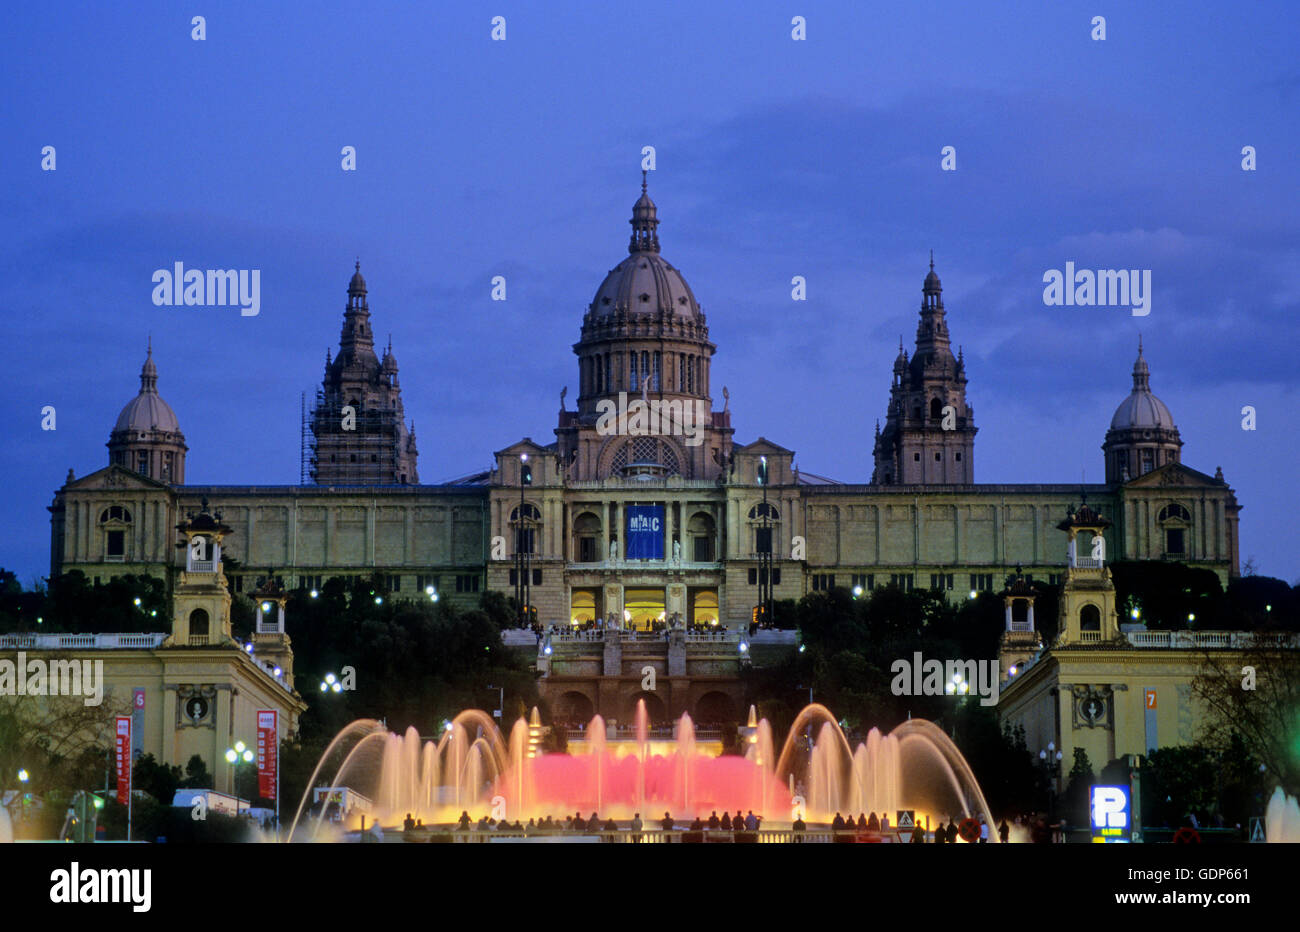 MNAC (National Art Museum of Catalonia) and fountains, Montjuic, Barcelona, Spain - Stock Image